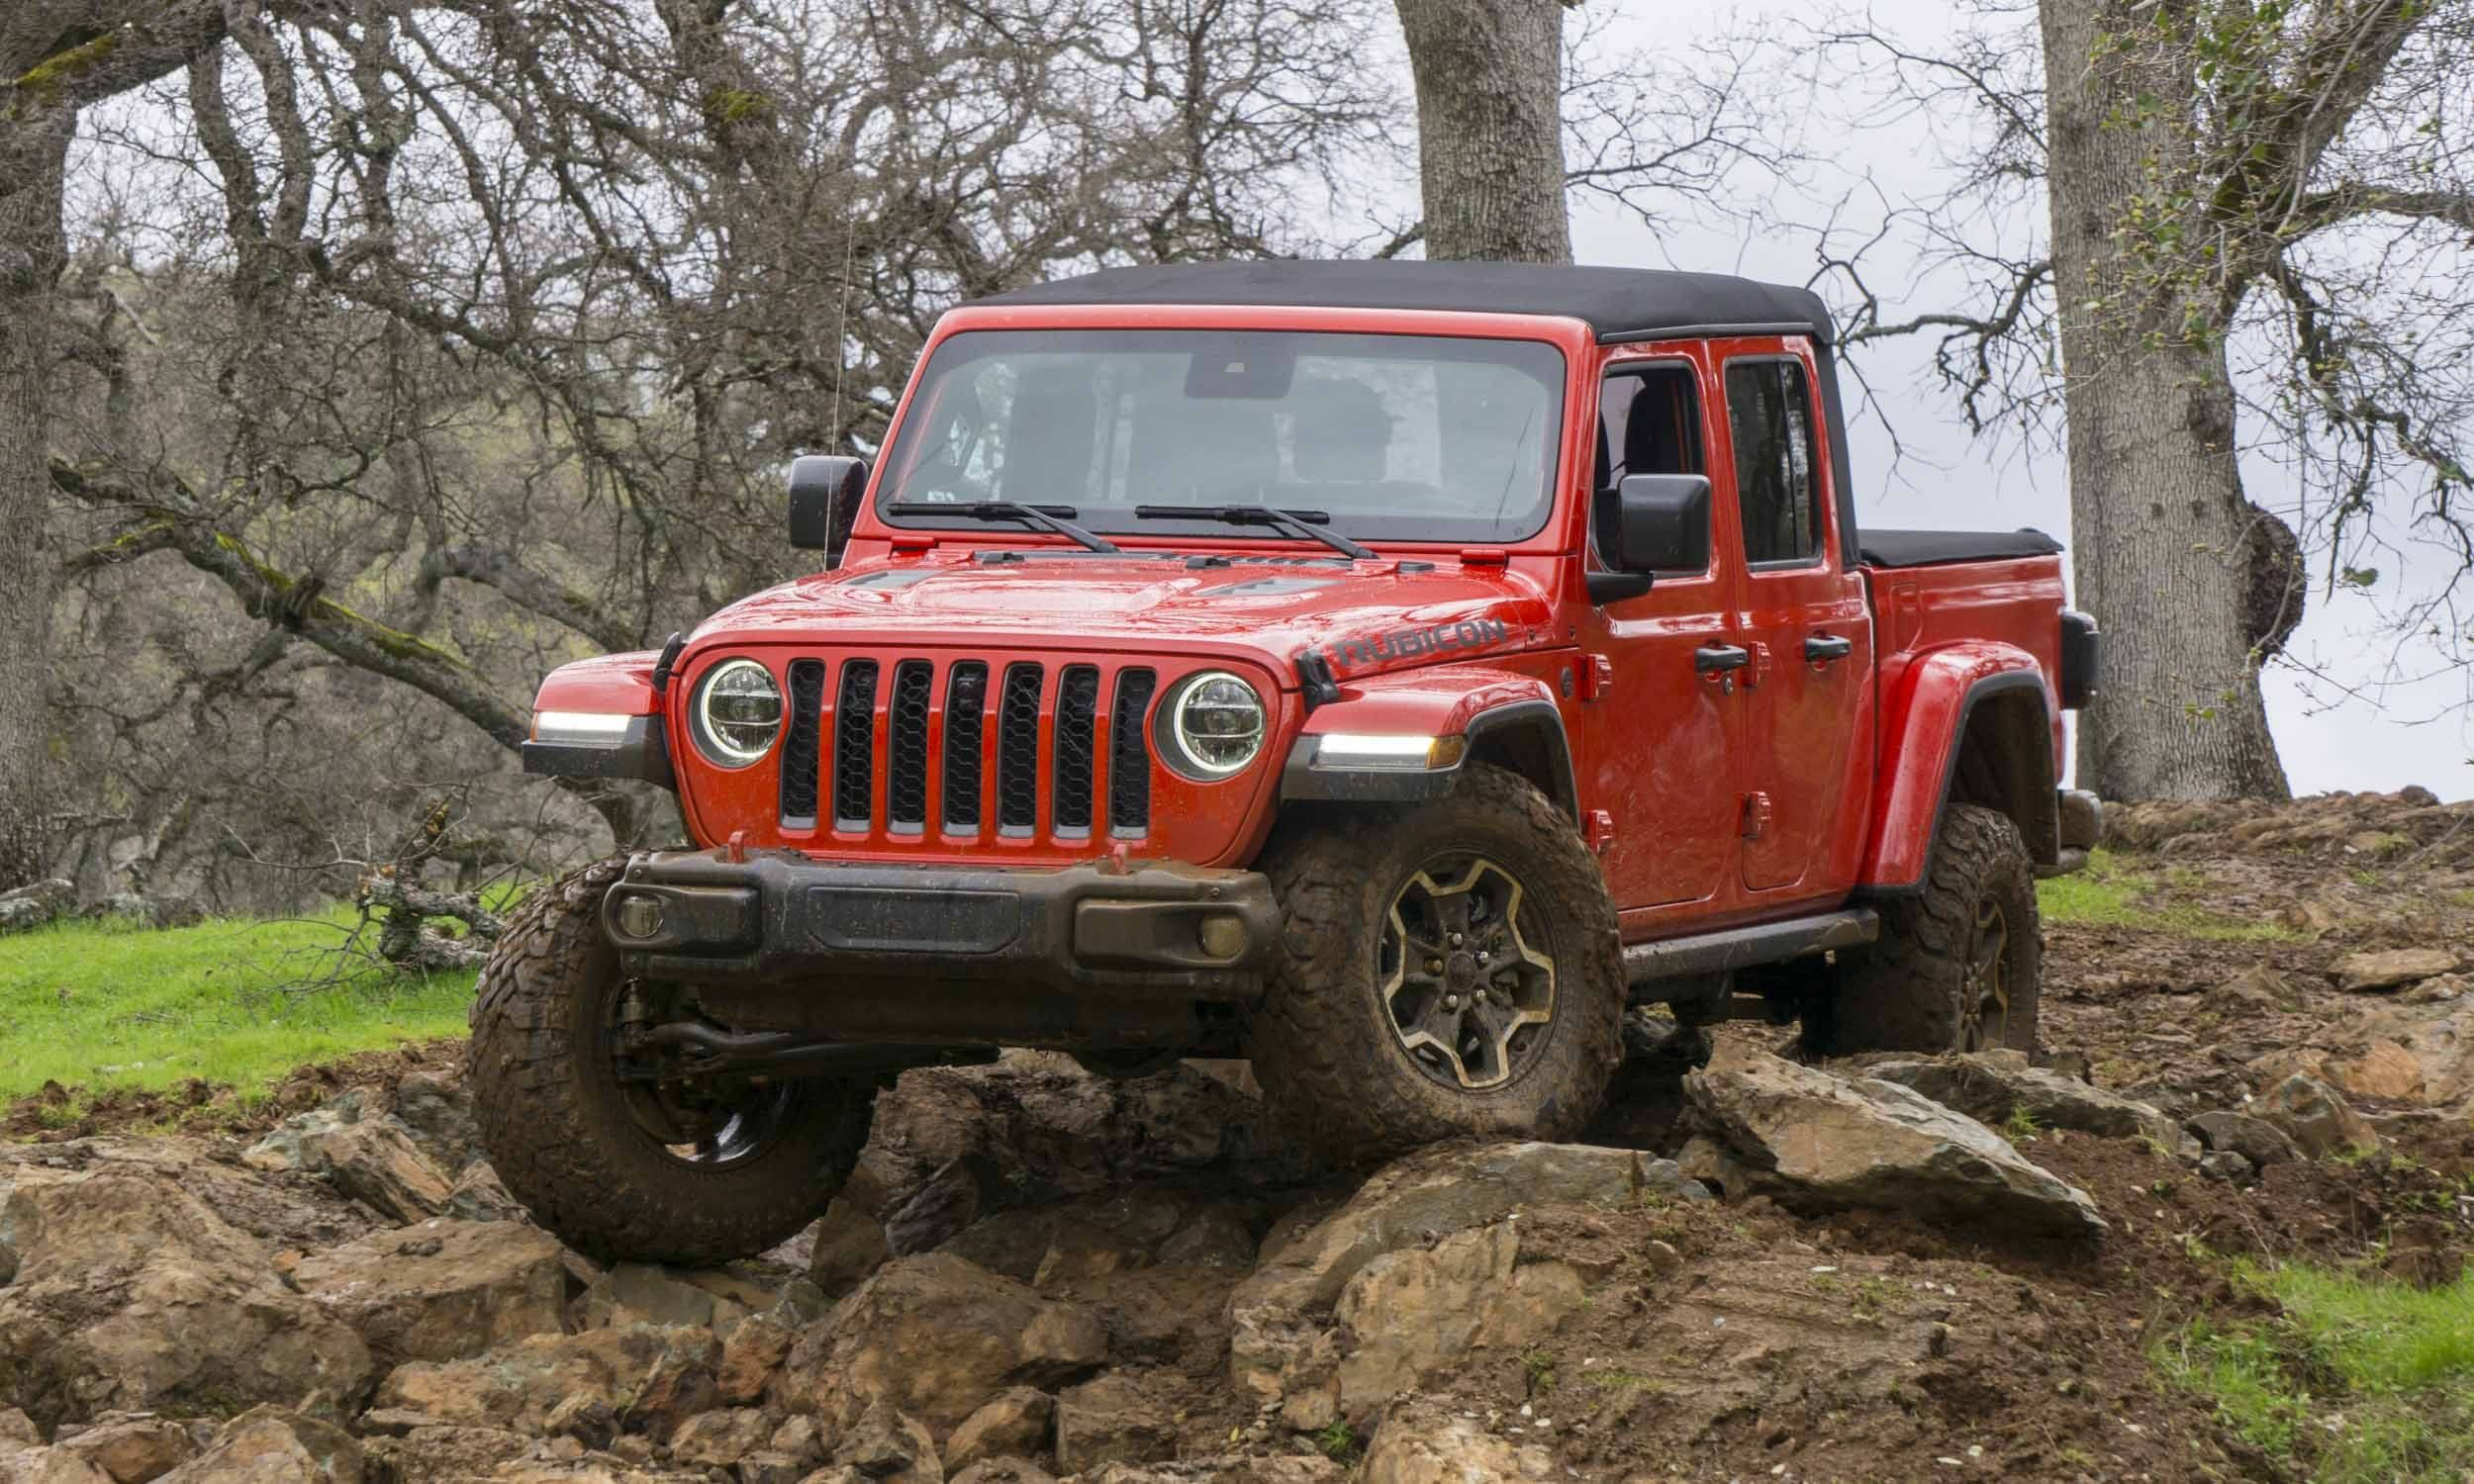 2020 Jeep Wrangler Price and Review in 2020 Jeep